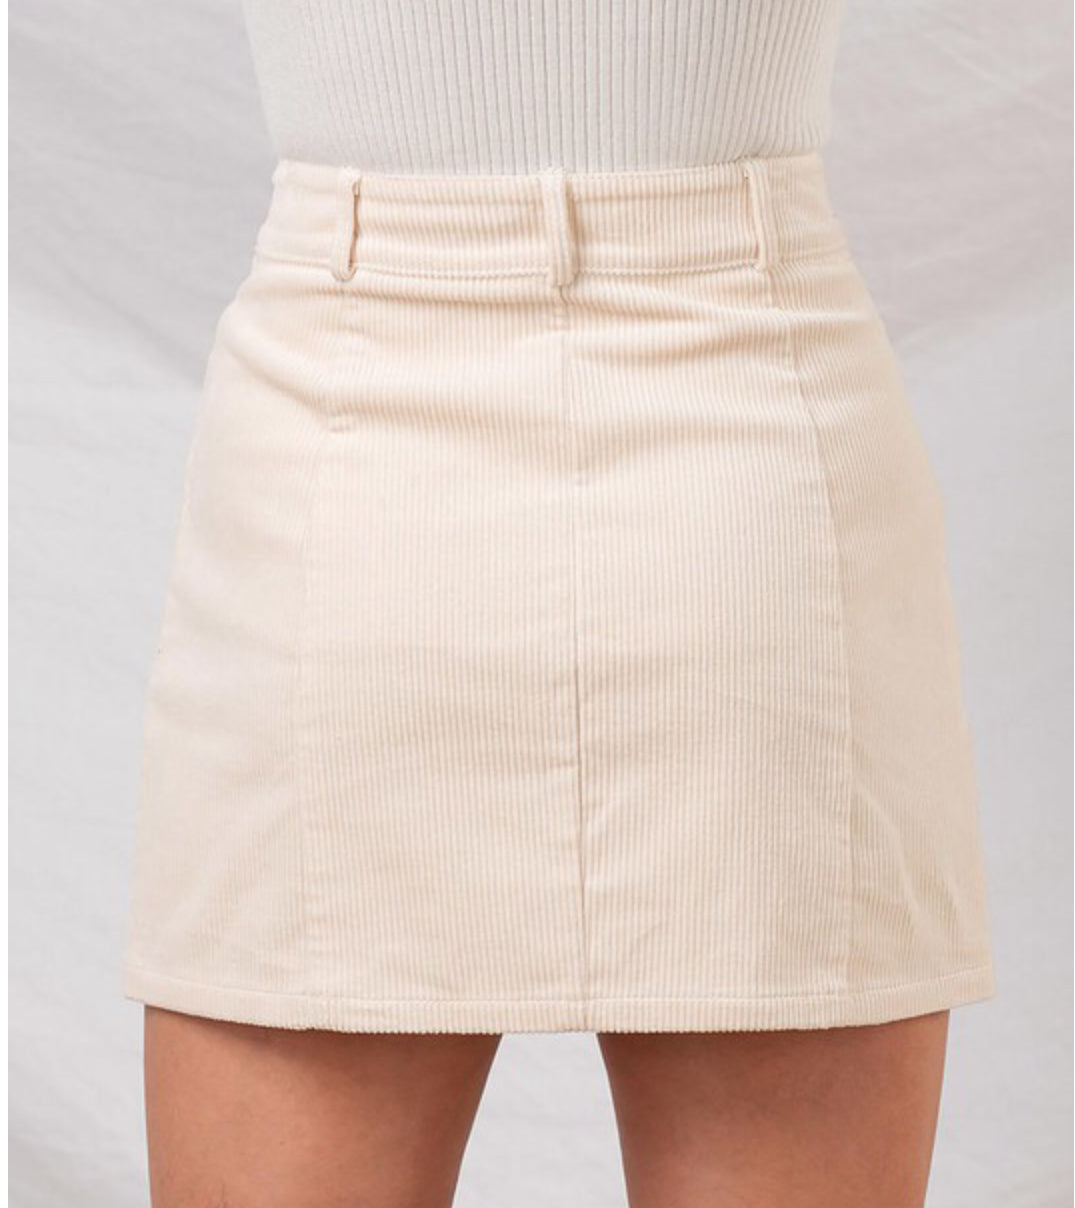 Missy corduroyed ivory skirt